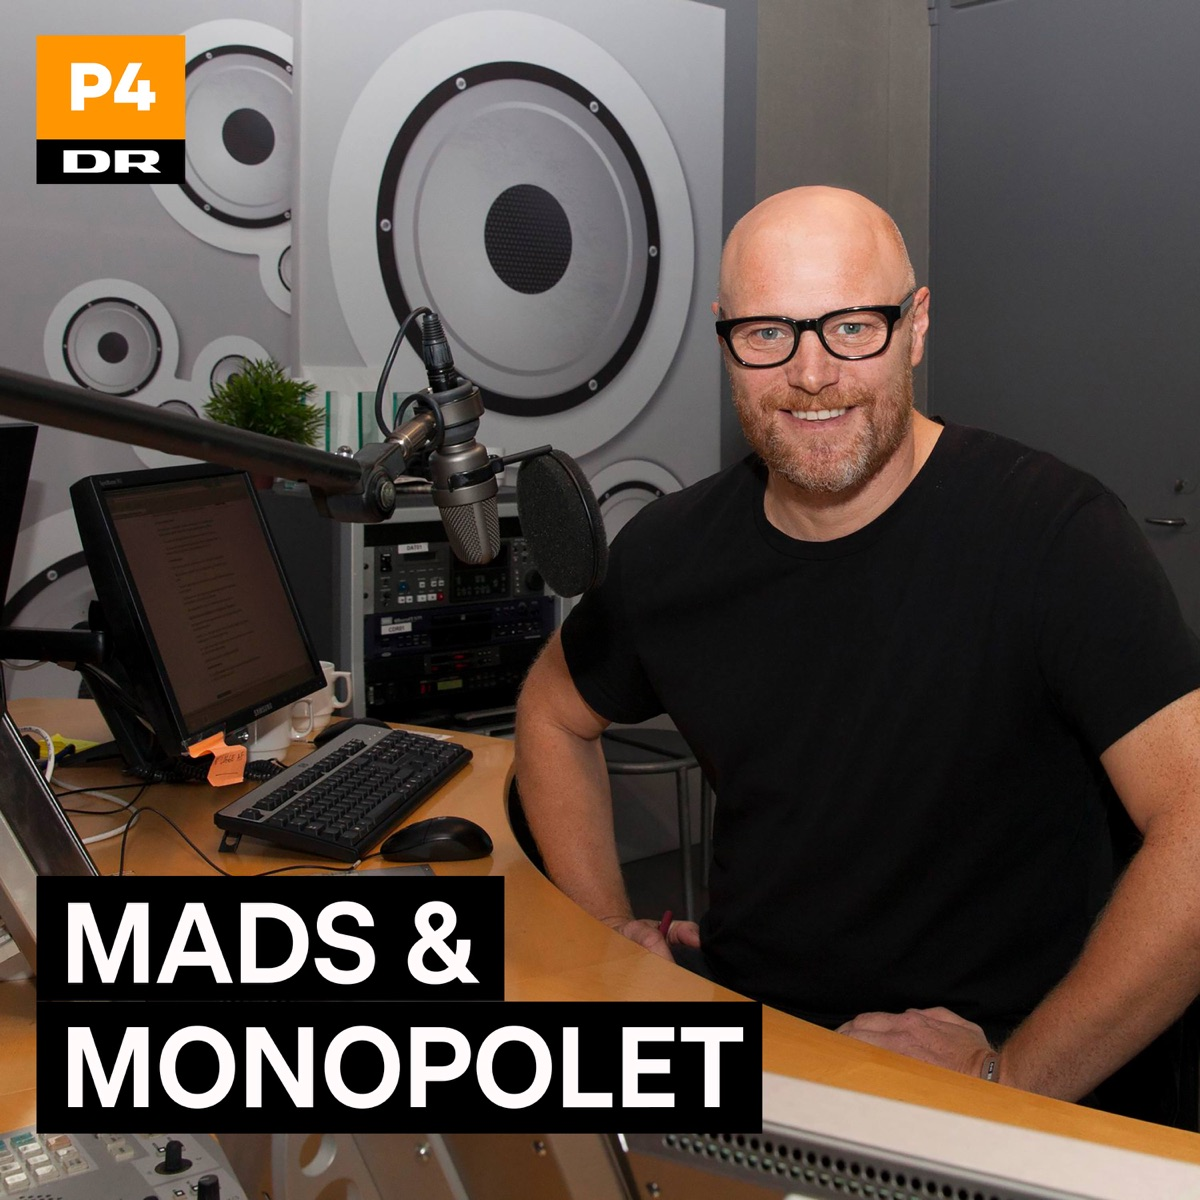 Mads & Monopolet - podcast - 27. jun 2020